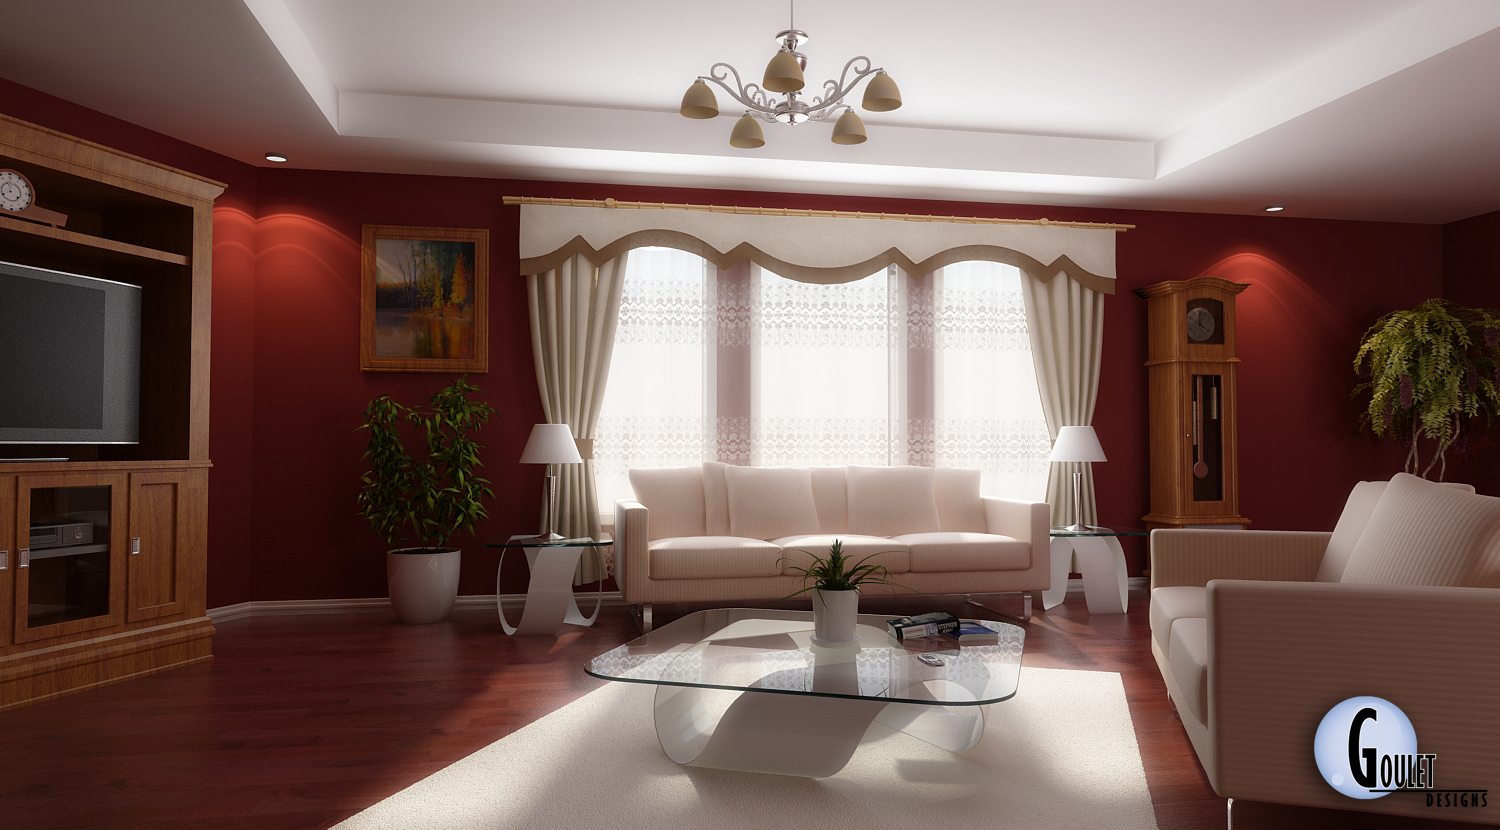 Living room decorating home designer for Red room design ideas